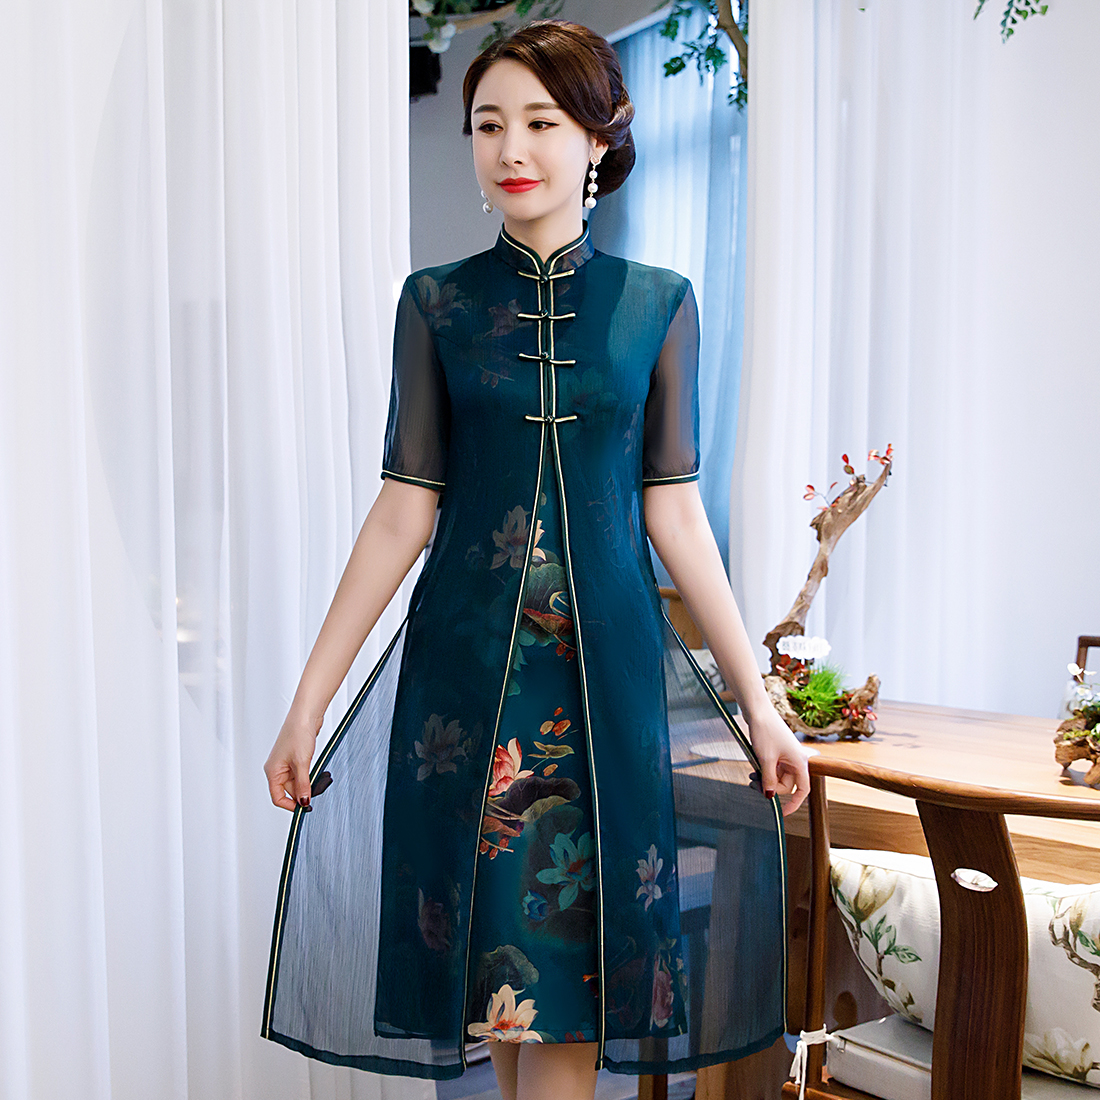 ea43faceb [Hot Promo] Retro Handmade Button Chinese Women Qipao Elegant Summer Print  Flower Cheongsam Oversize Oriental Evening Party Dress 3XL 4XL ...